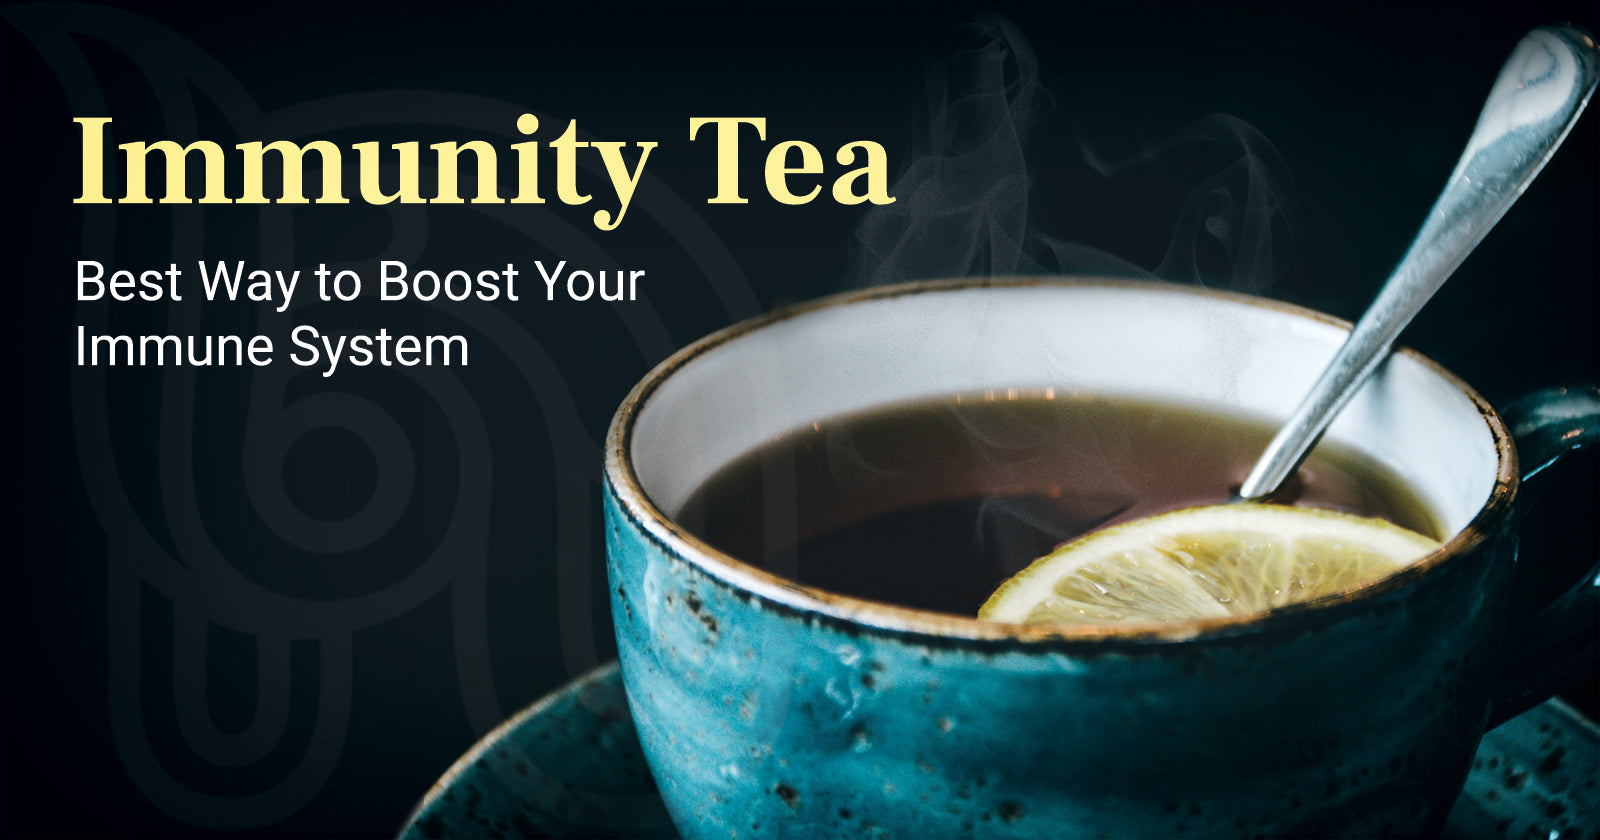 Immunity Tea - Best Way to Boost Your Immune System